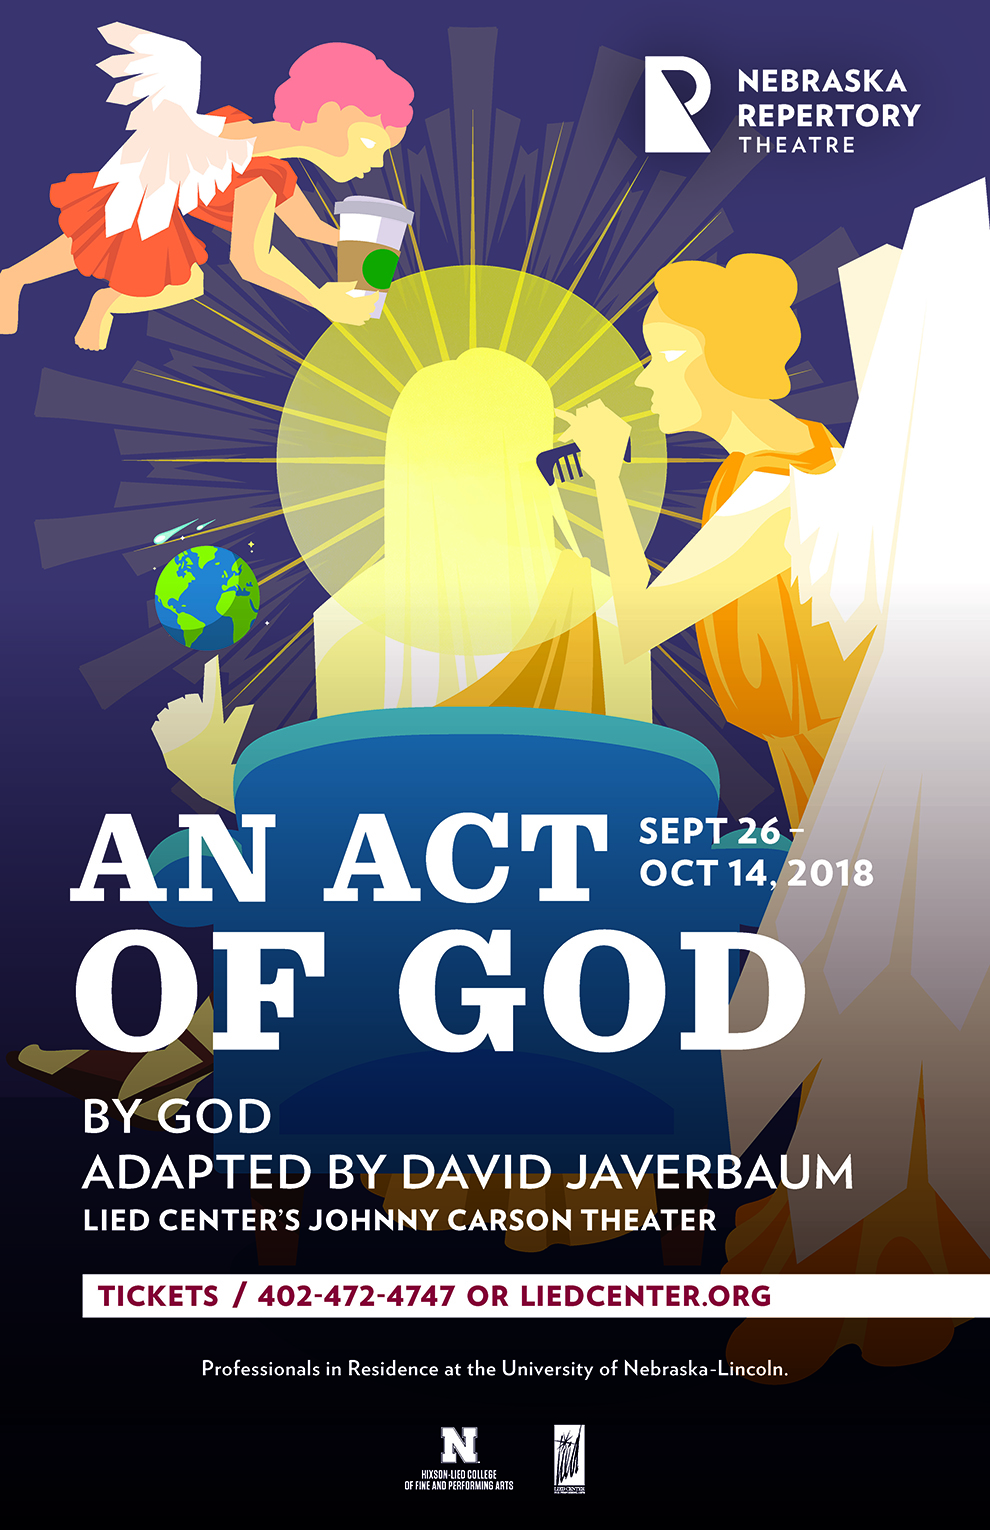 A poster featuring a long-haired figure sitting with their back turned to the viewer. Their head is surrounded by a halo and they are being attended by two angels, one combing its hair and the other handing it coffee in a paper cup.